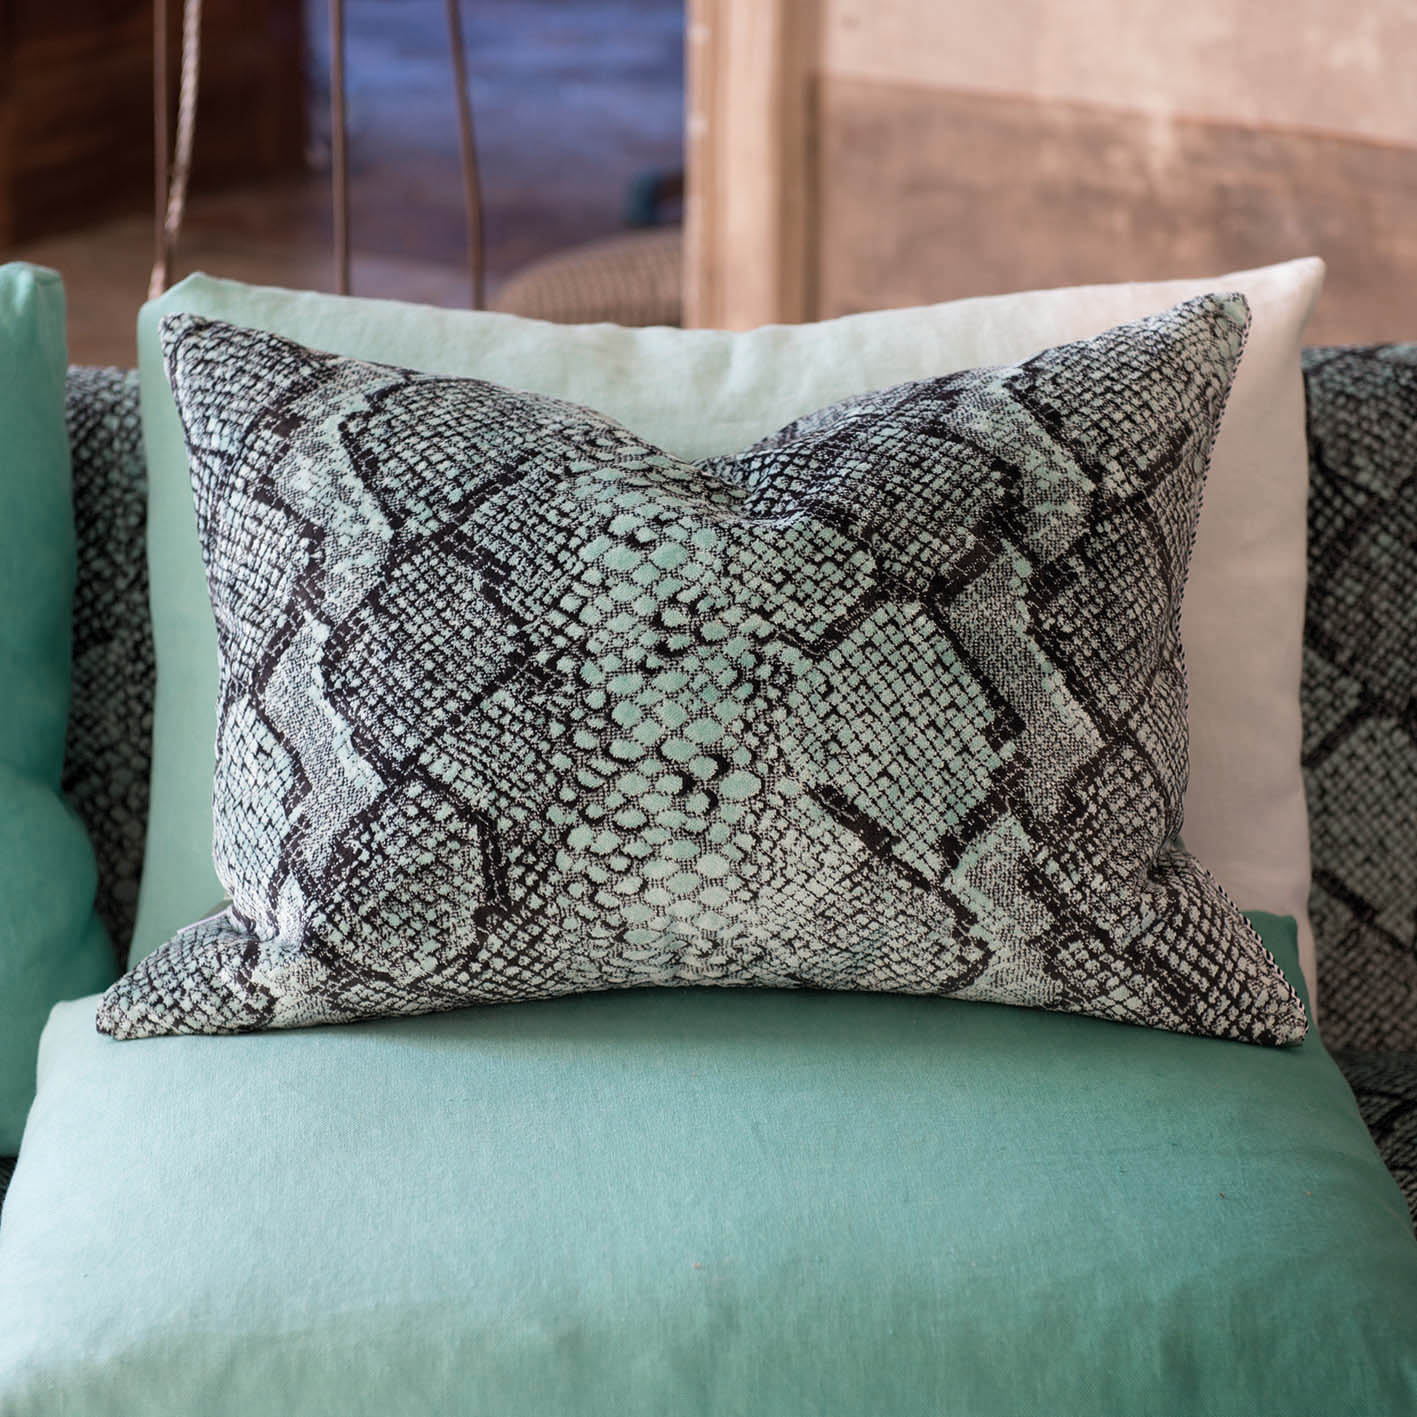 Oriago Spearmint cushion from Designers Guild